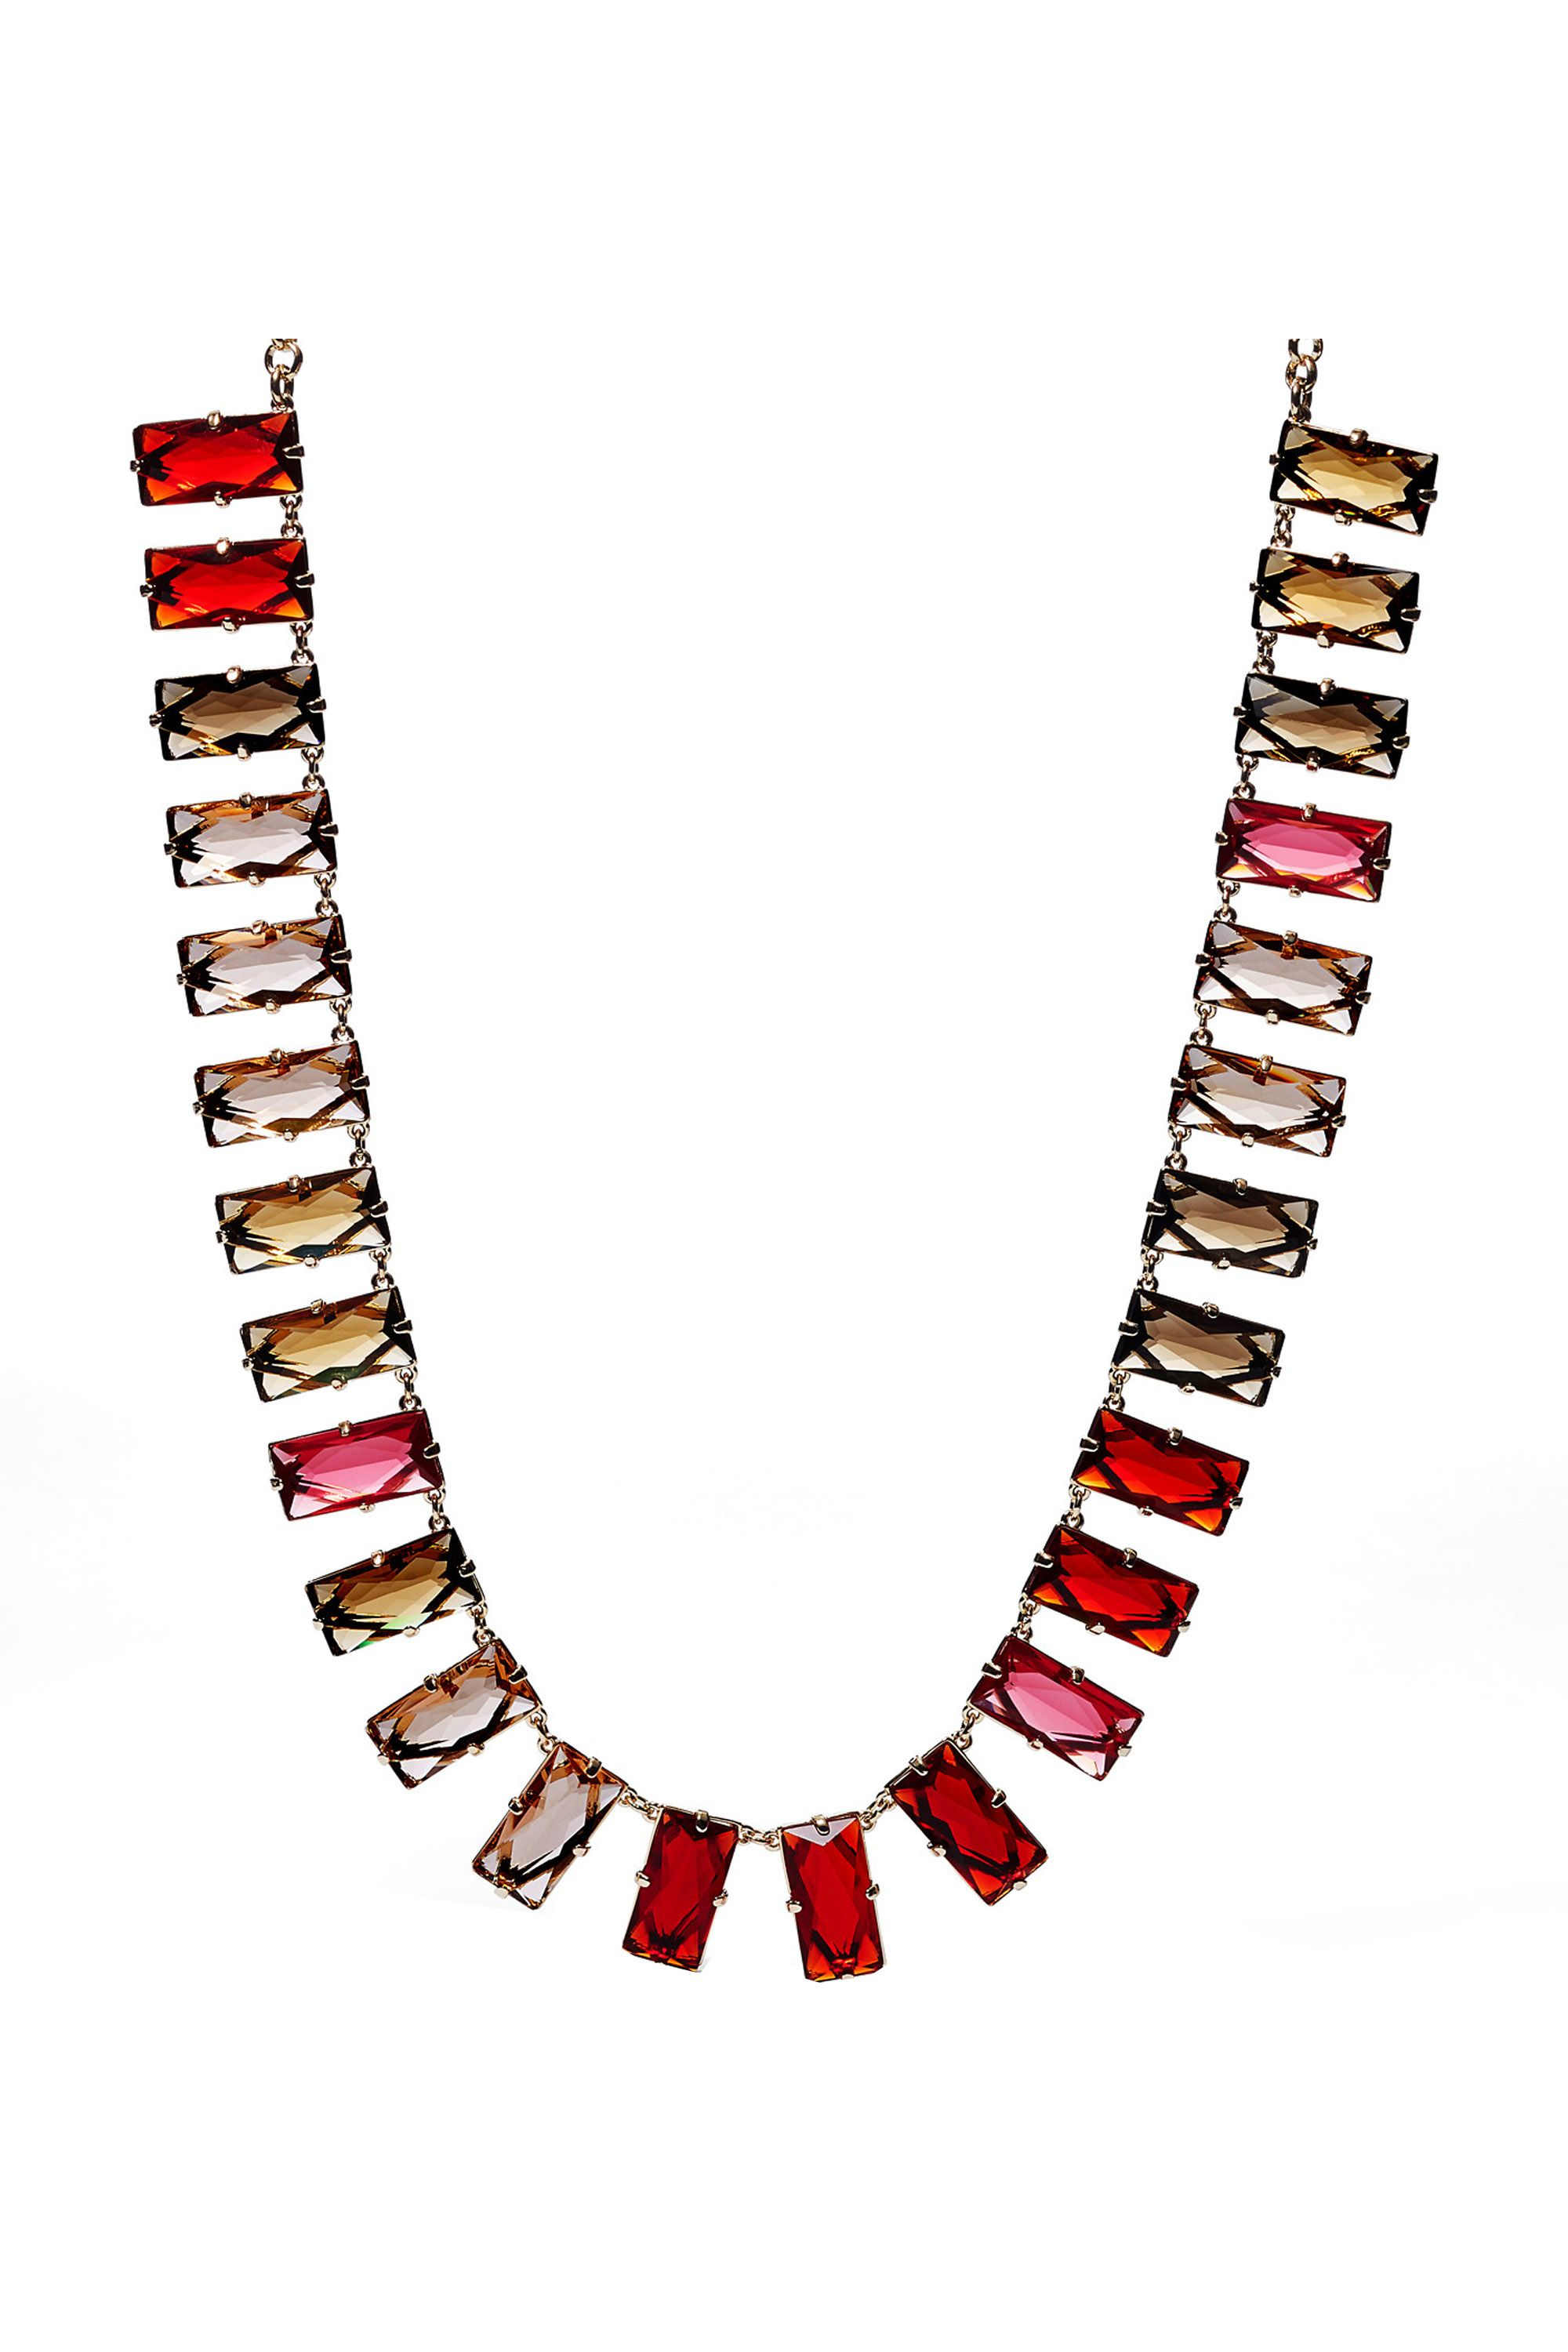 "<p>With a piece this beautiful, there's no need to pile on jewelry. Pair a classy LBD with a multicolored statement necklace and call it a day.</p><p>Fossil Multi Baguette Necklace, $128; <a href=""https://ad.doubleclick.net/ddm/clk/299580923;126523283;o"" target=""_blank"">fossil.com</a><br></p>"